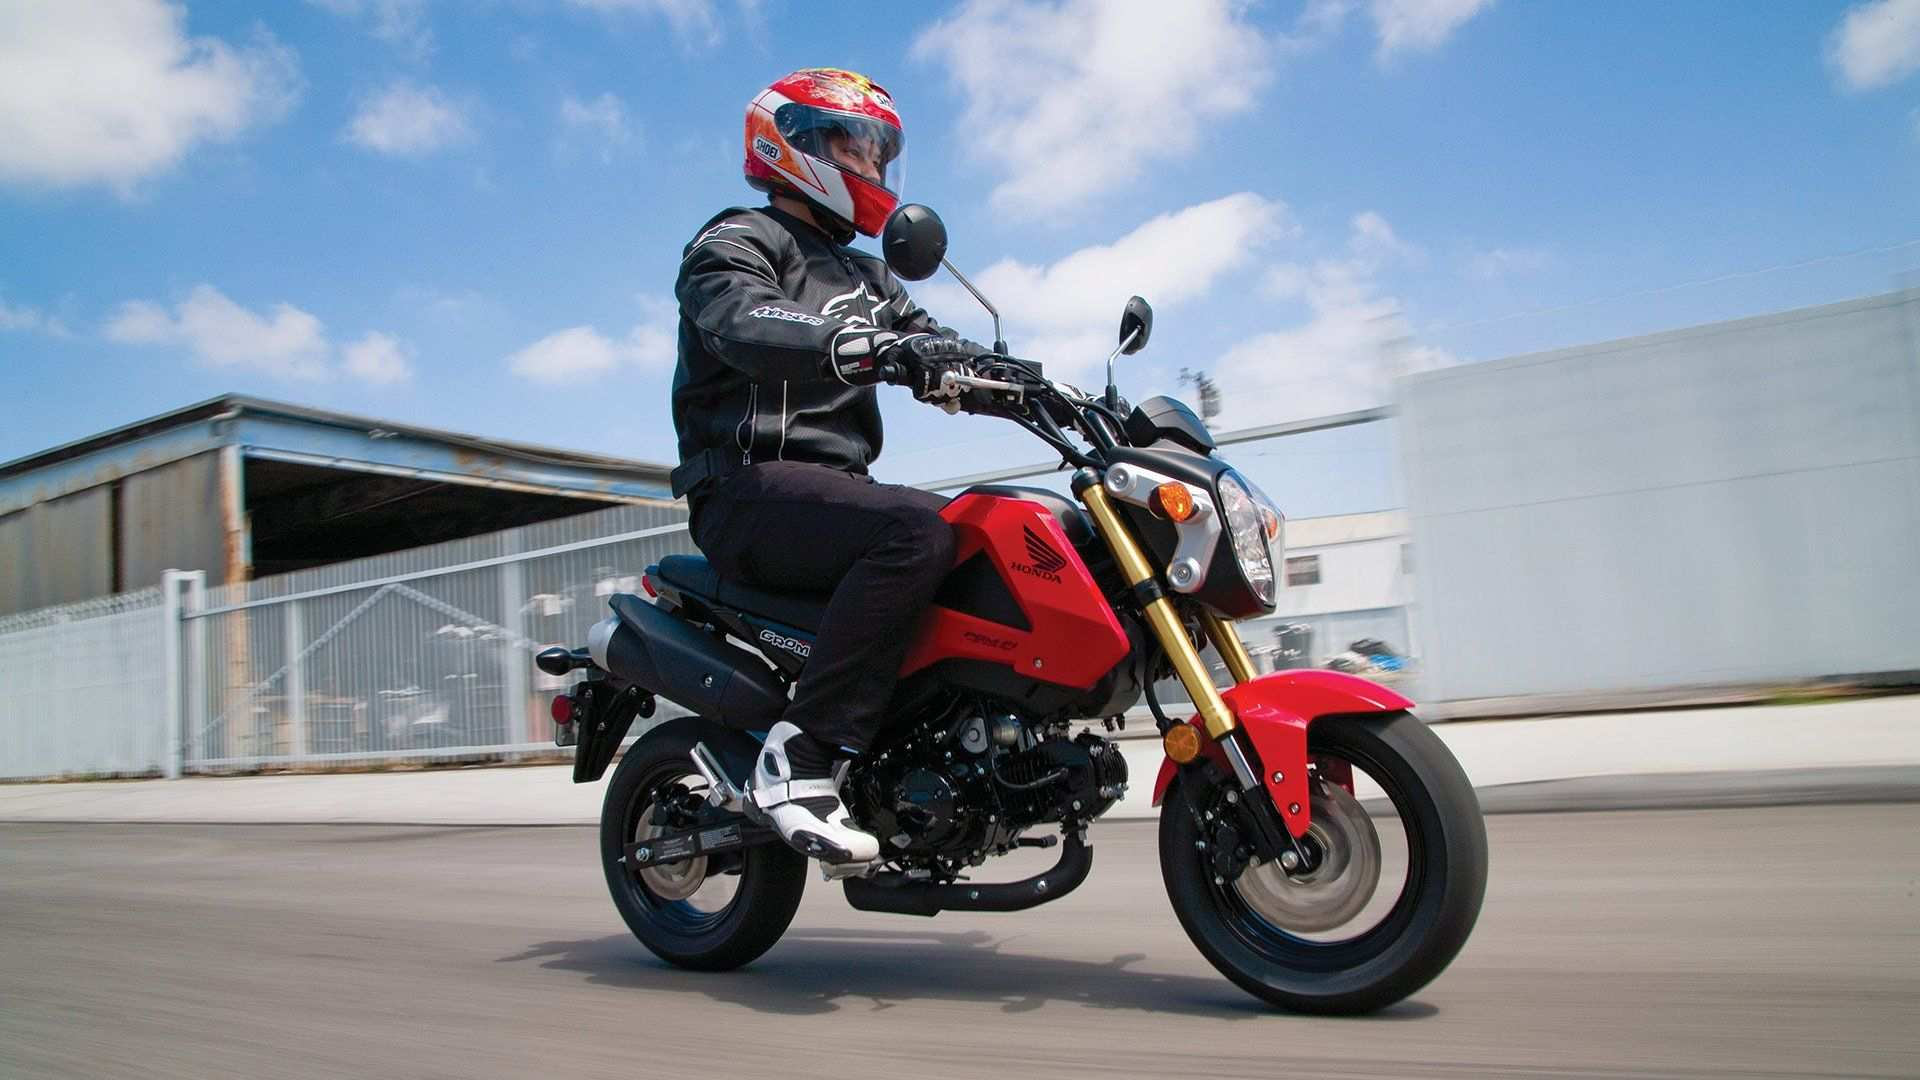 52 Gallery of The 2019 Honda Grom Top Speed Spy Shoot Photos with The 2019 Honda Grom Top Speed Spy Shoot